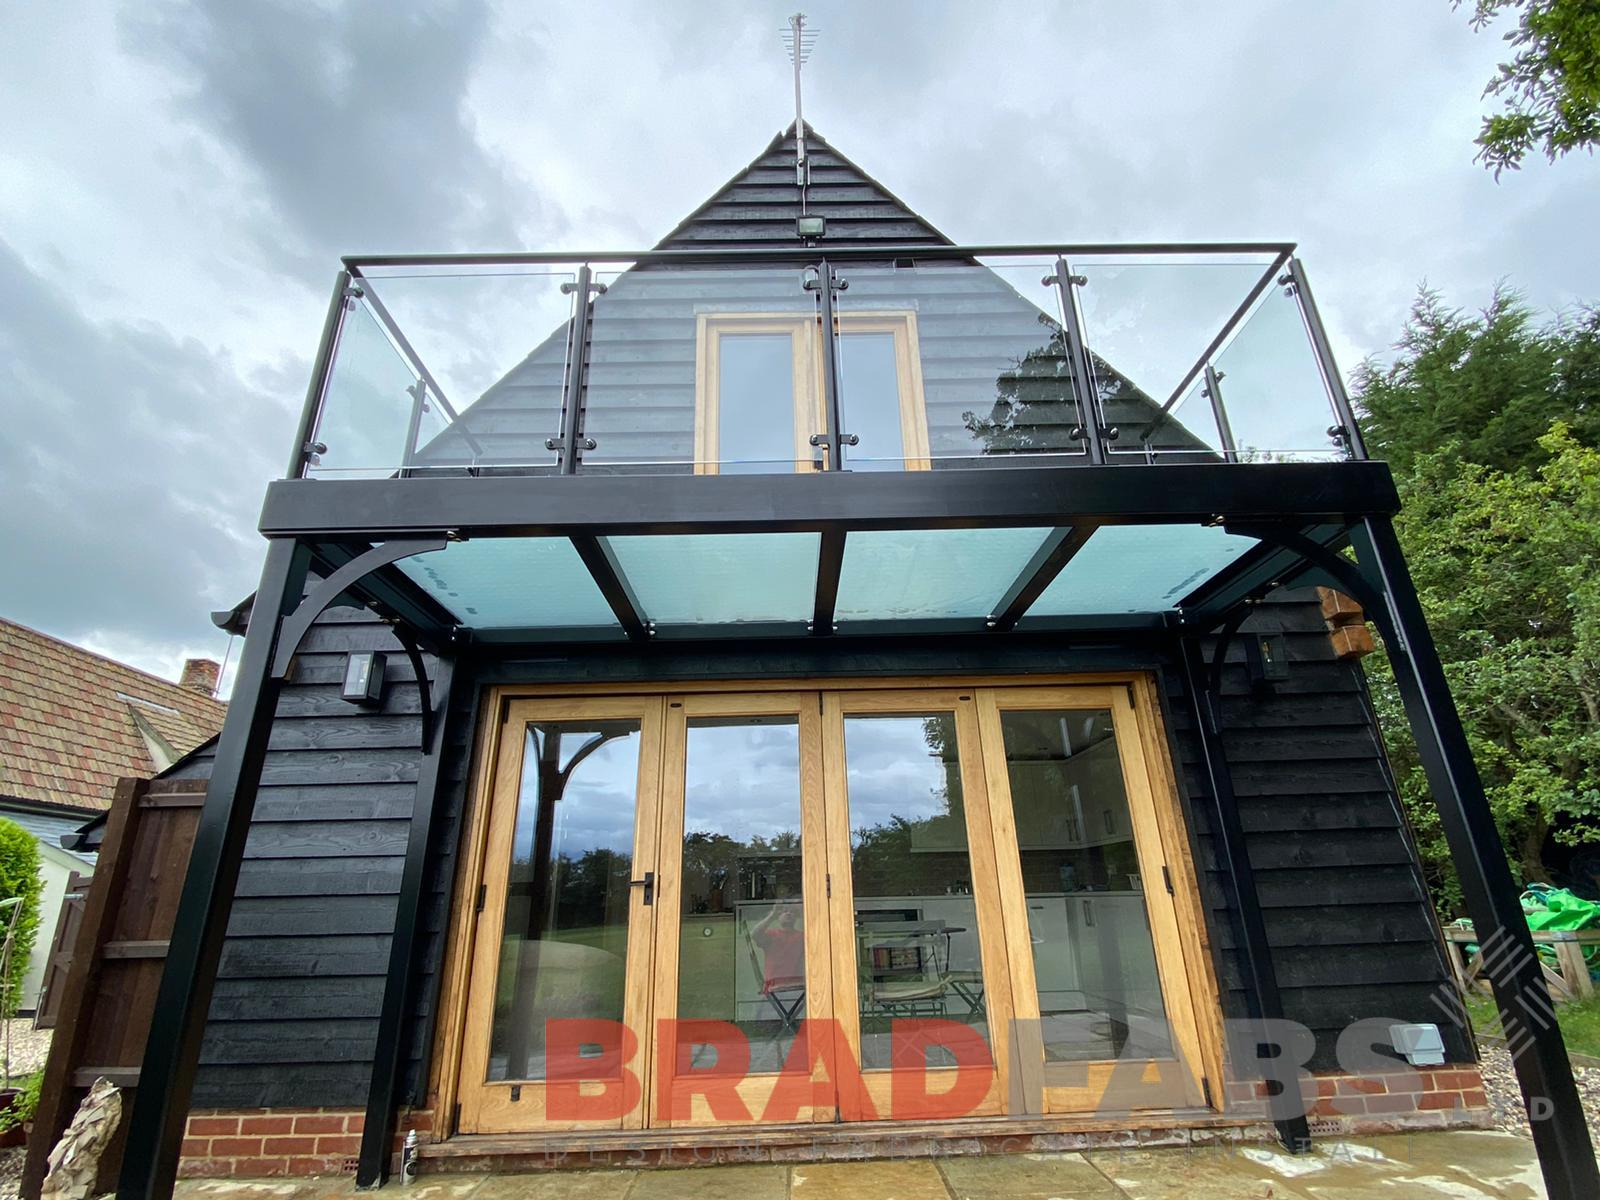 Bespoke balcony with glass floor by Bradfabs Ltd